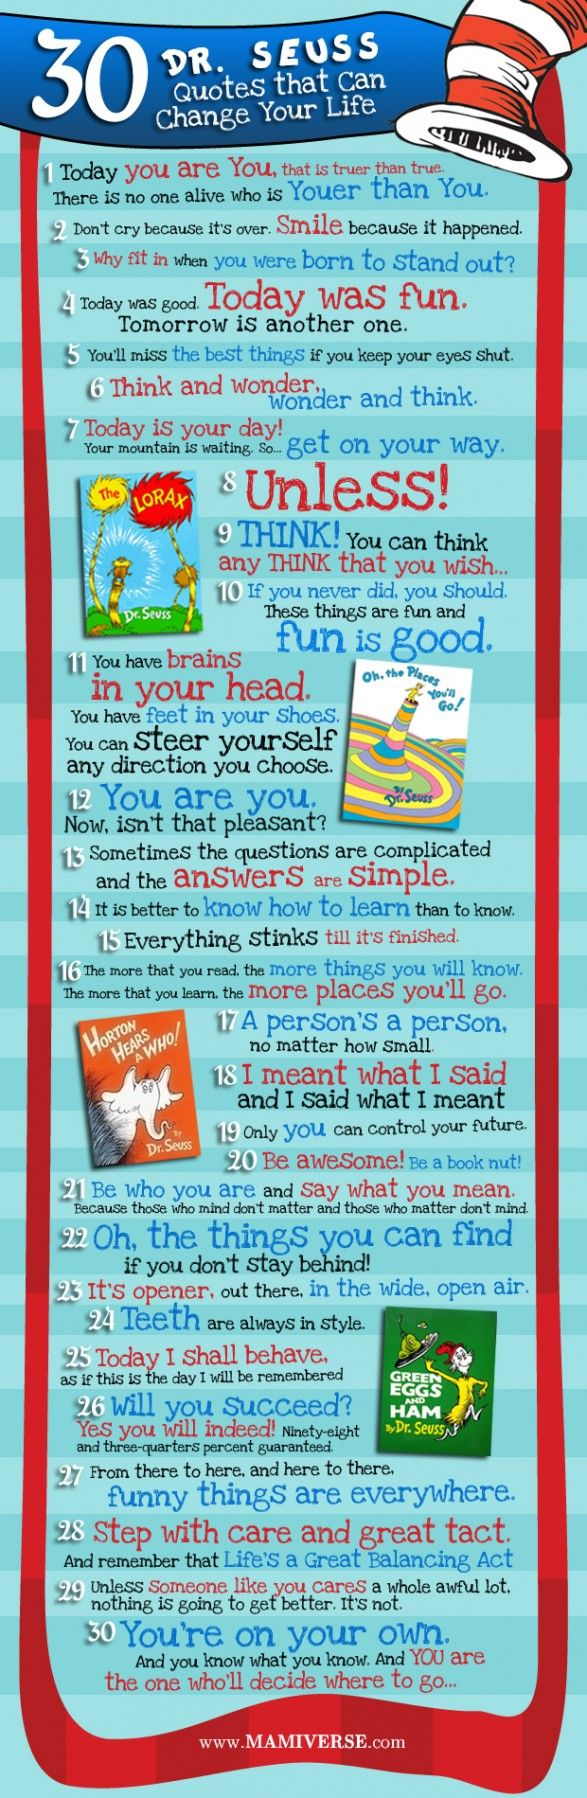 Dr. SeussIdeas, Inspiration, Drseus, Life Lessons, Kids, Dr Suess, Seuss Quotes, Dr. Seuss, Dr. Suess